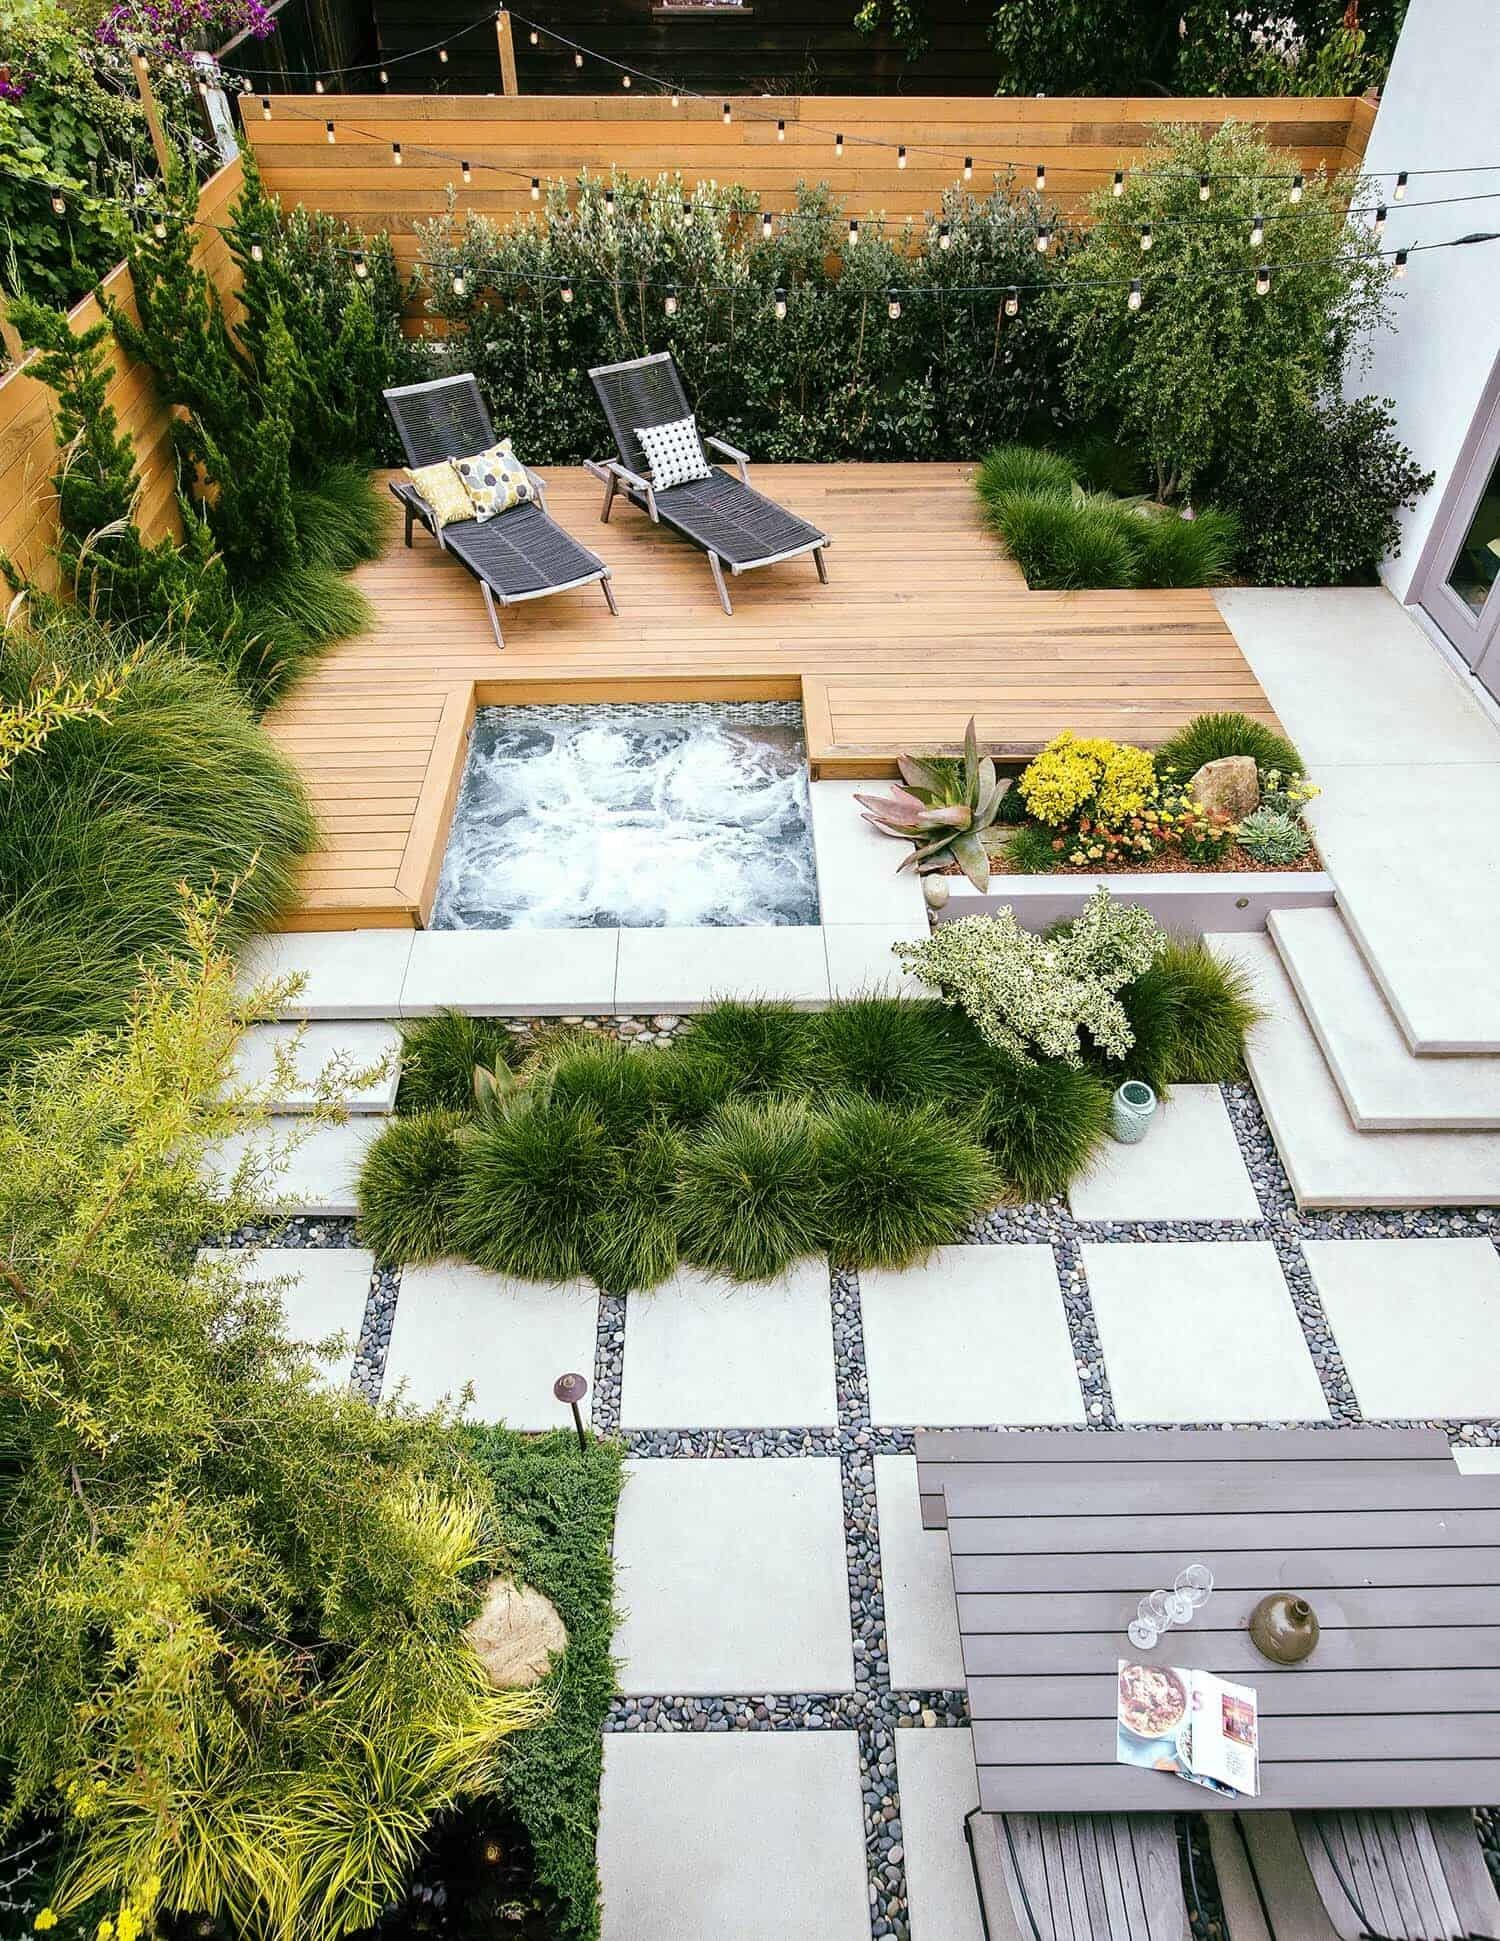 This backyard was made for relaxation, from the redwood deck and hot tub to the lush foilage that creates a tropical oasis